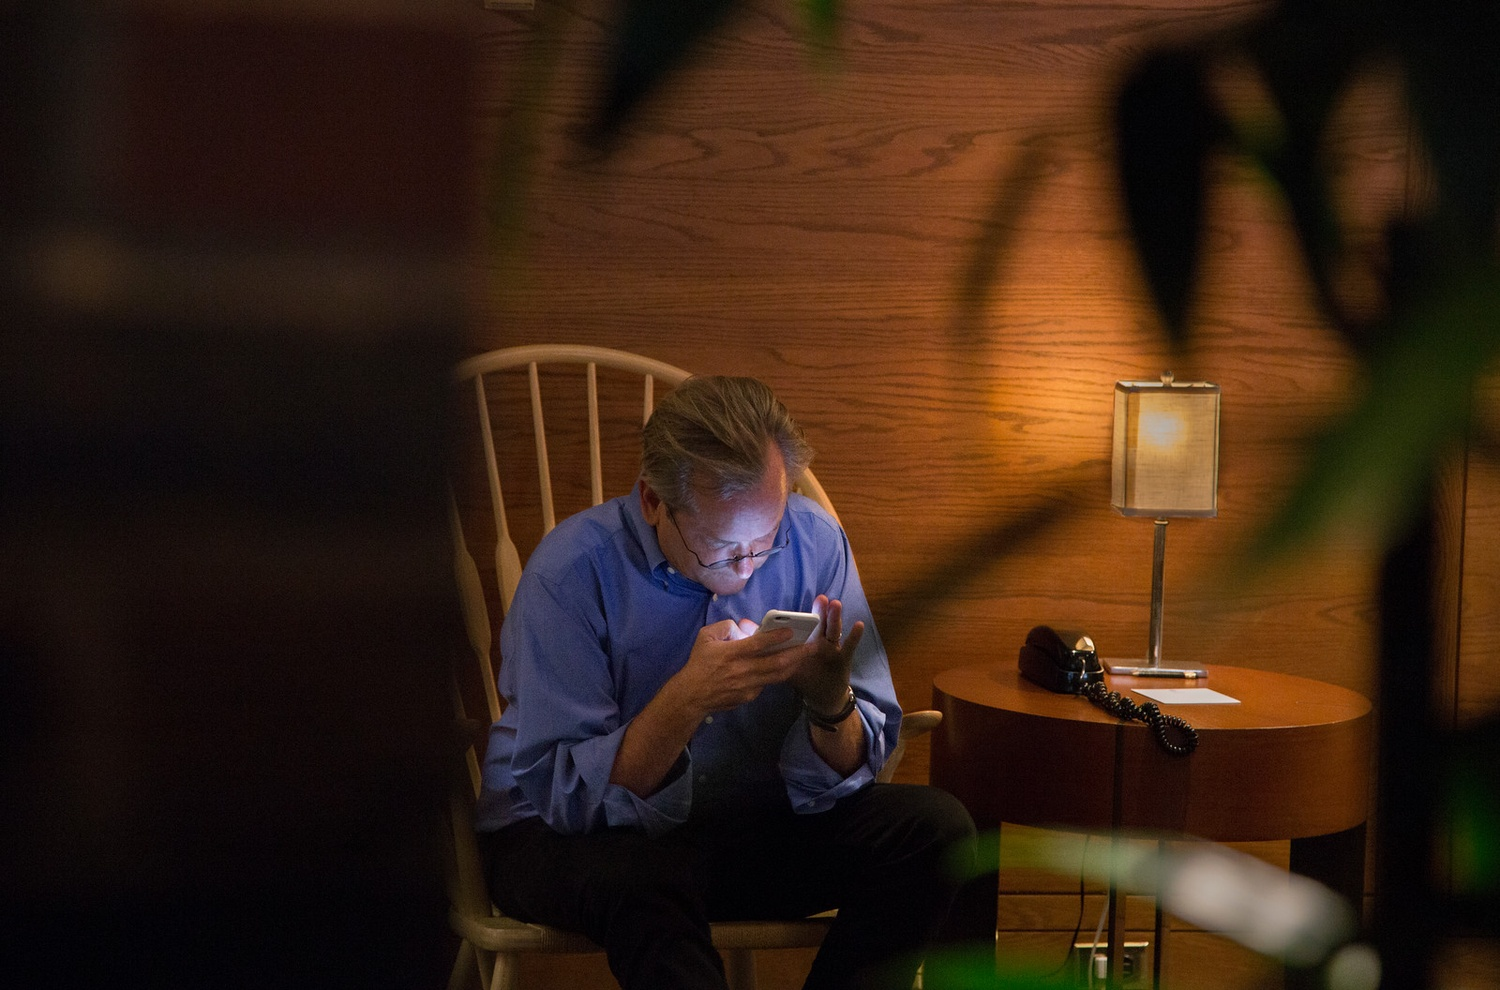 Harvard Law School professor Larry Lessig works on his cell phone in the lobby of the Charles Hotel. Lessig, who announced his presidential bid in early September, had been traveling extensively and was anxious about booking a last-minute flight to Washington, D.C.